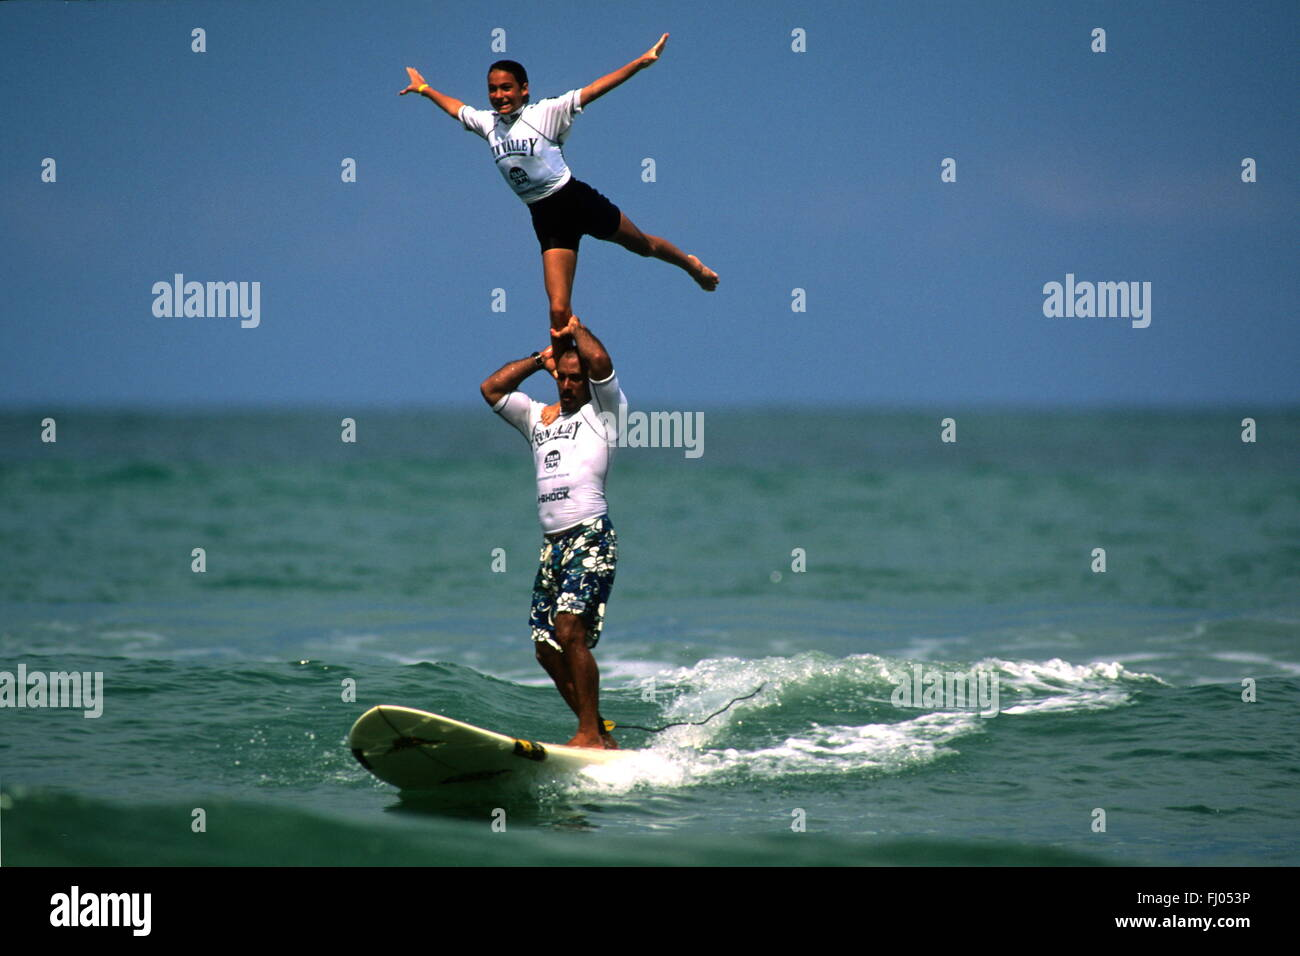 tandem surfing choreographed by the waves - Stock Image